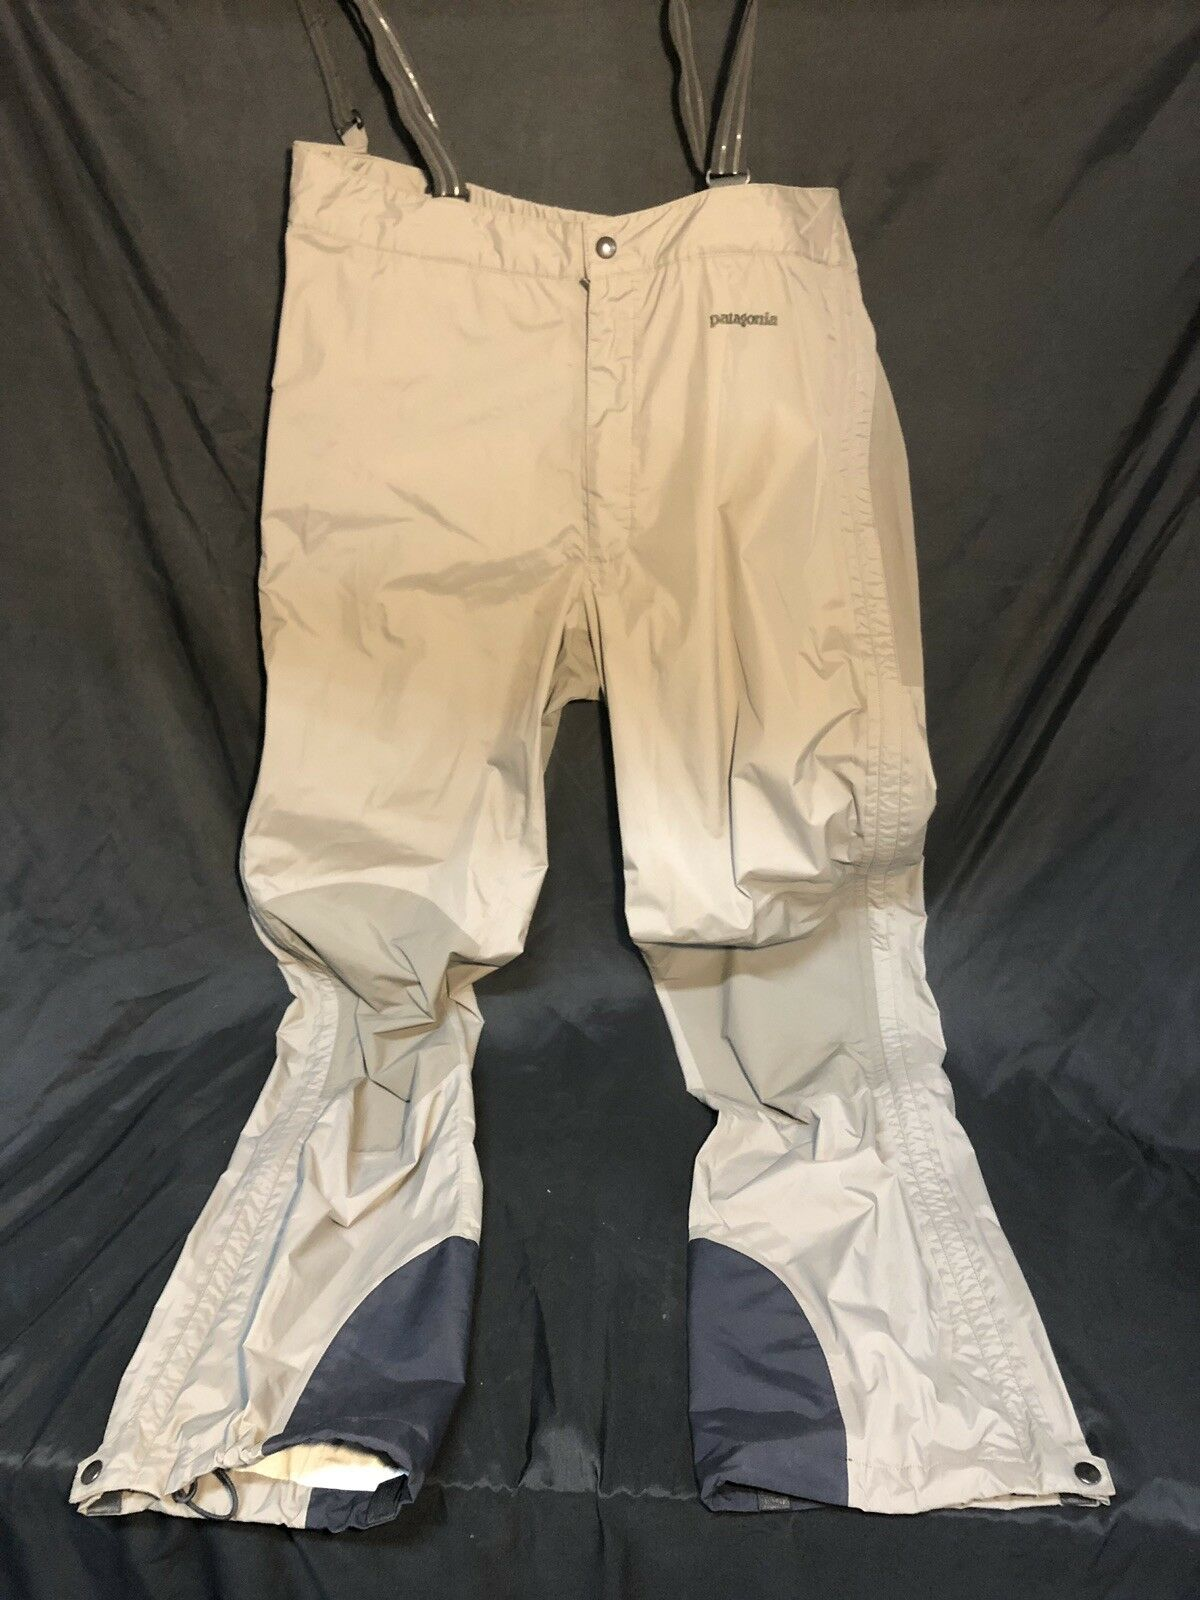 PATAGONIA MARS  PCU L6 HARDSHELL RAIN WET WEATHER PANTS TROUSERS SOCOM SEALs 36  new listing